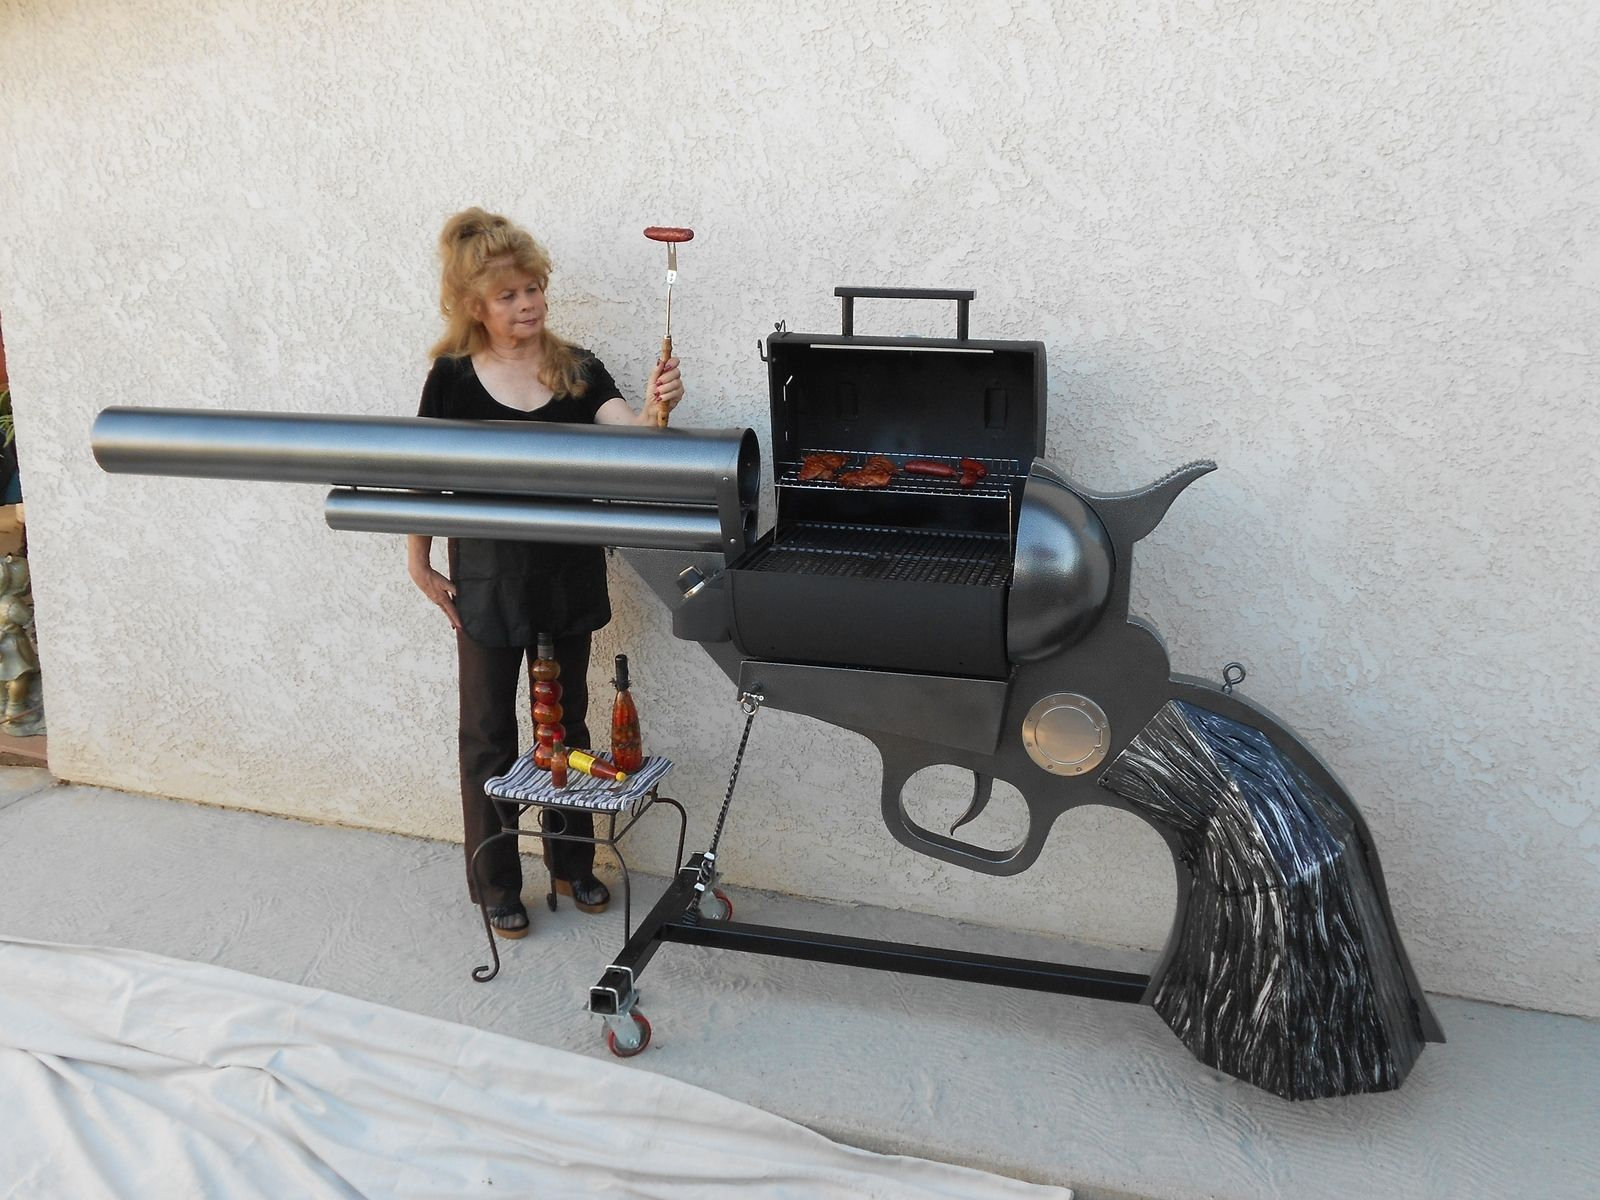 Hand Made Colt 45 Bbq by RLM Creations | CustomMade.com